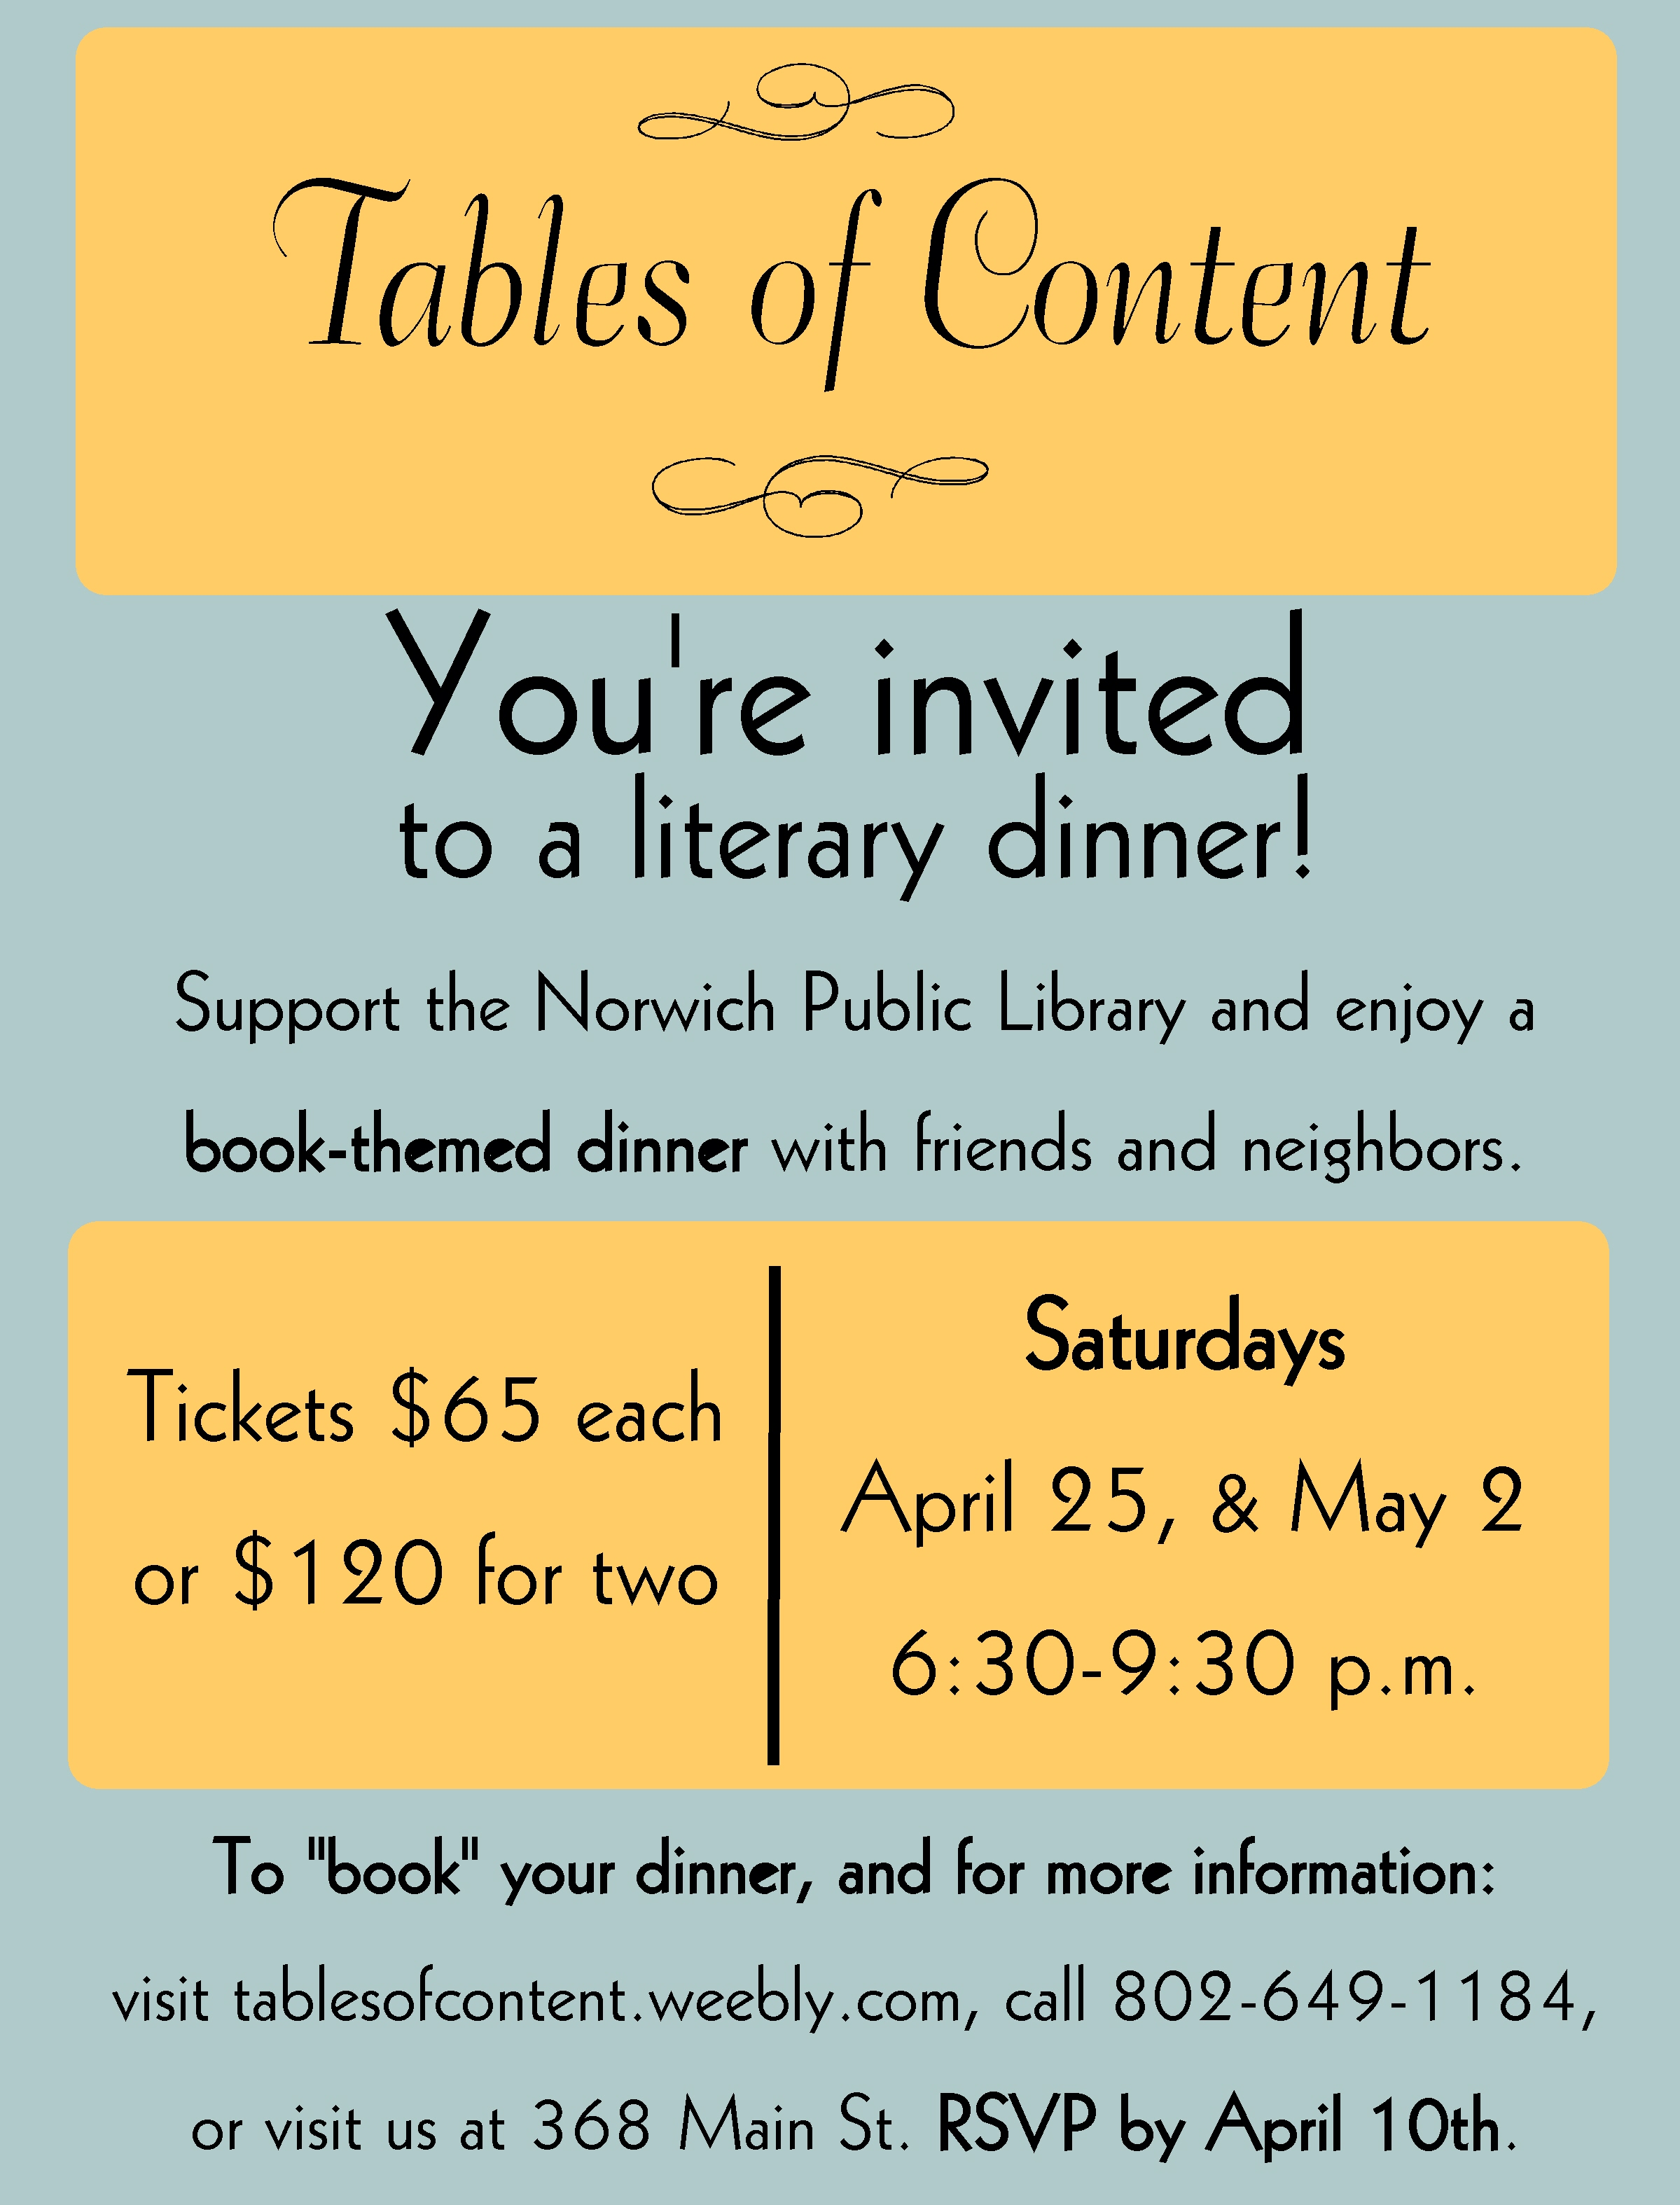 Tables of Content Saturdays: April 25th and May 2nd at 6:30pm